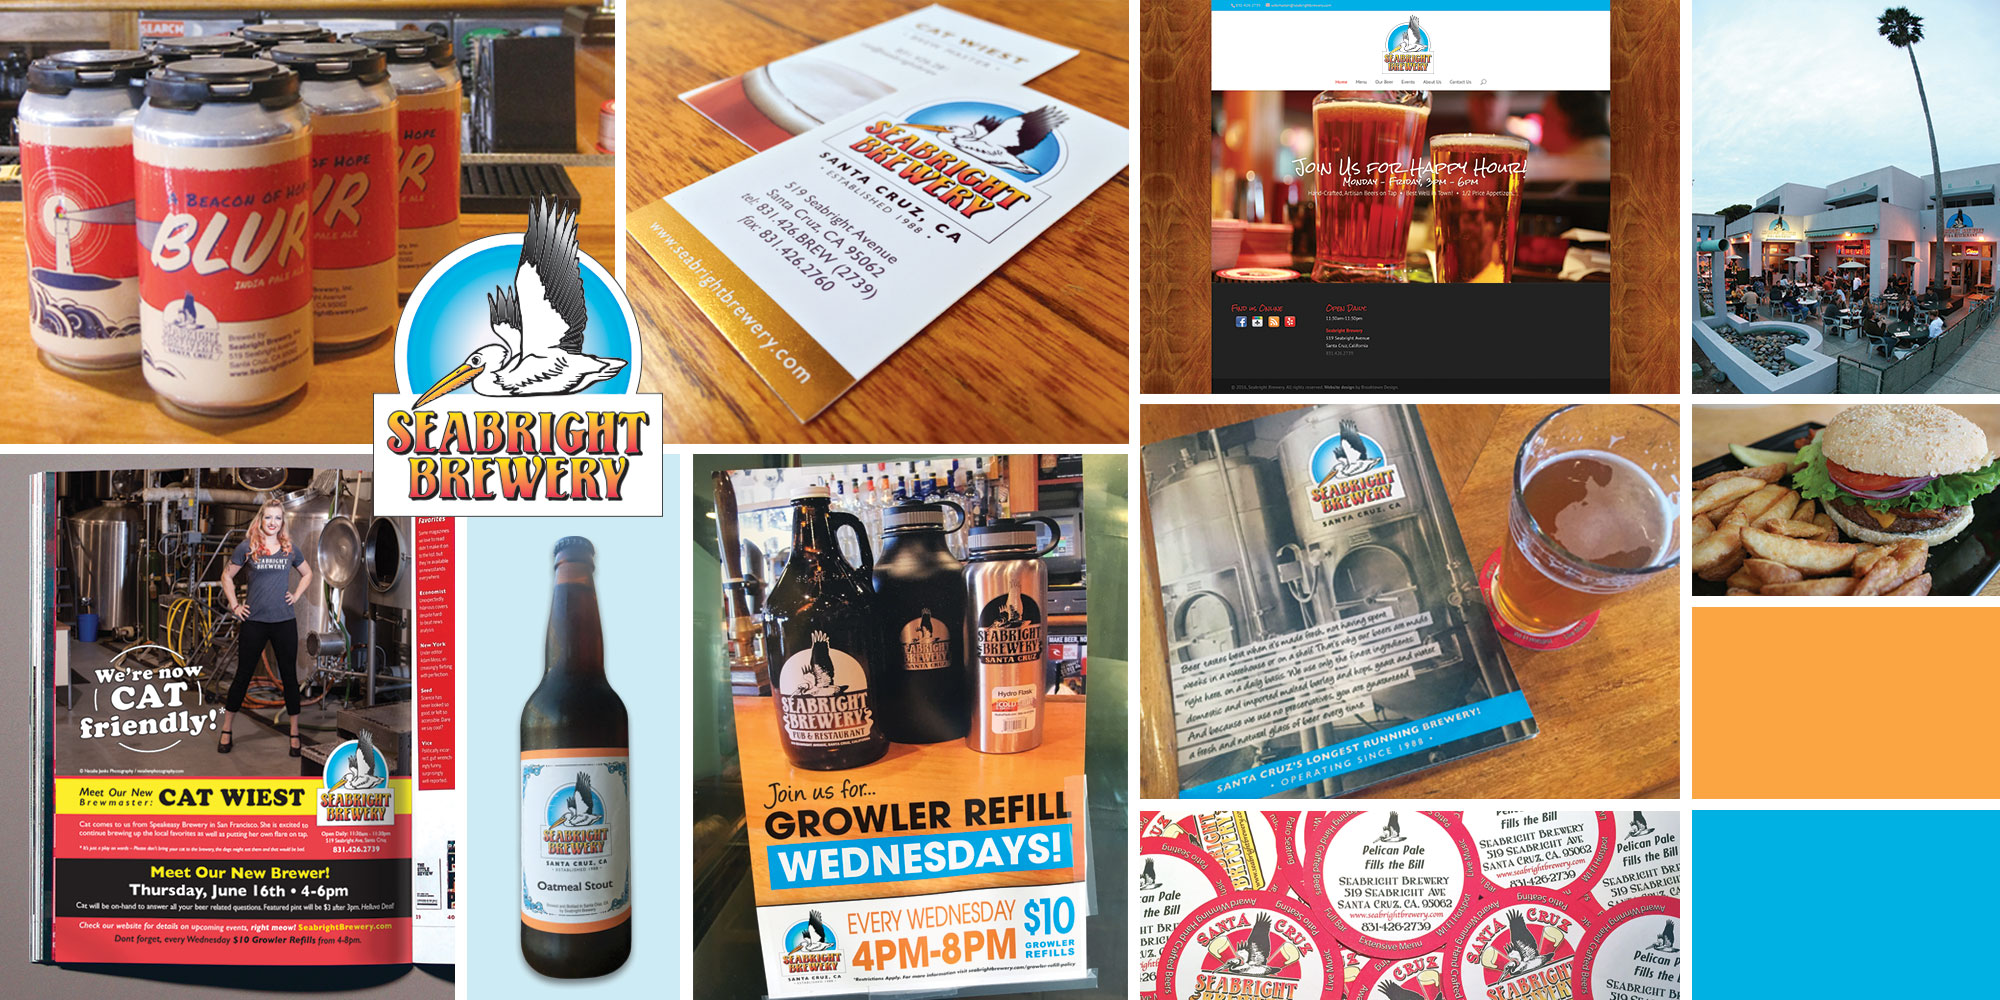 Seabright Brewery project collage